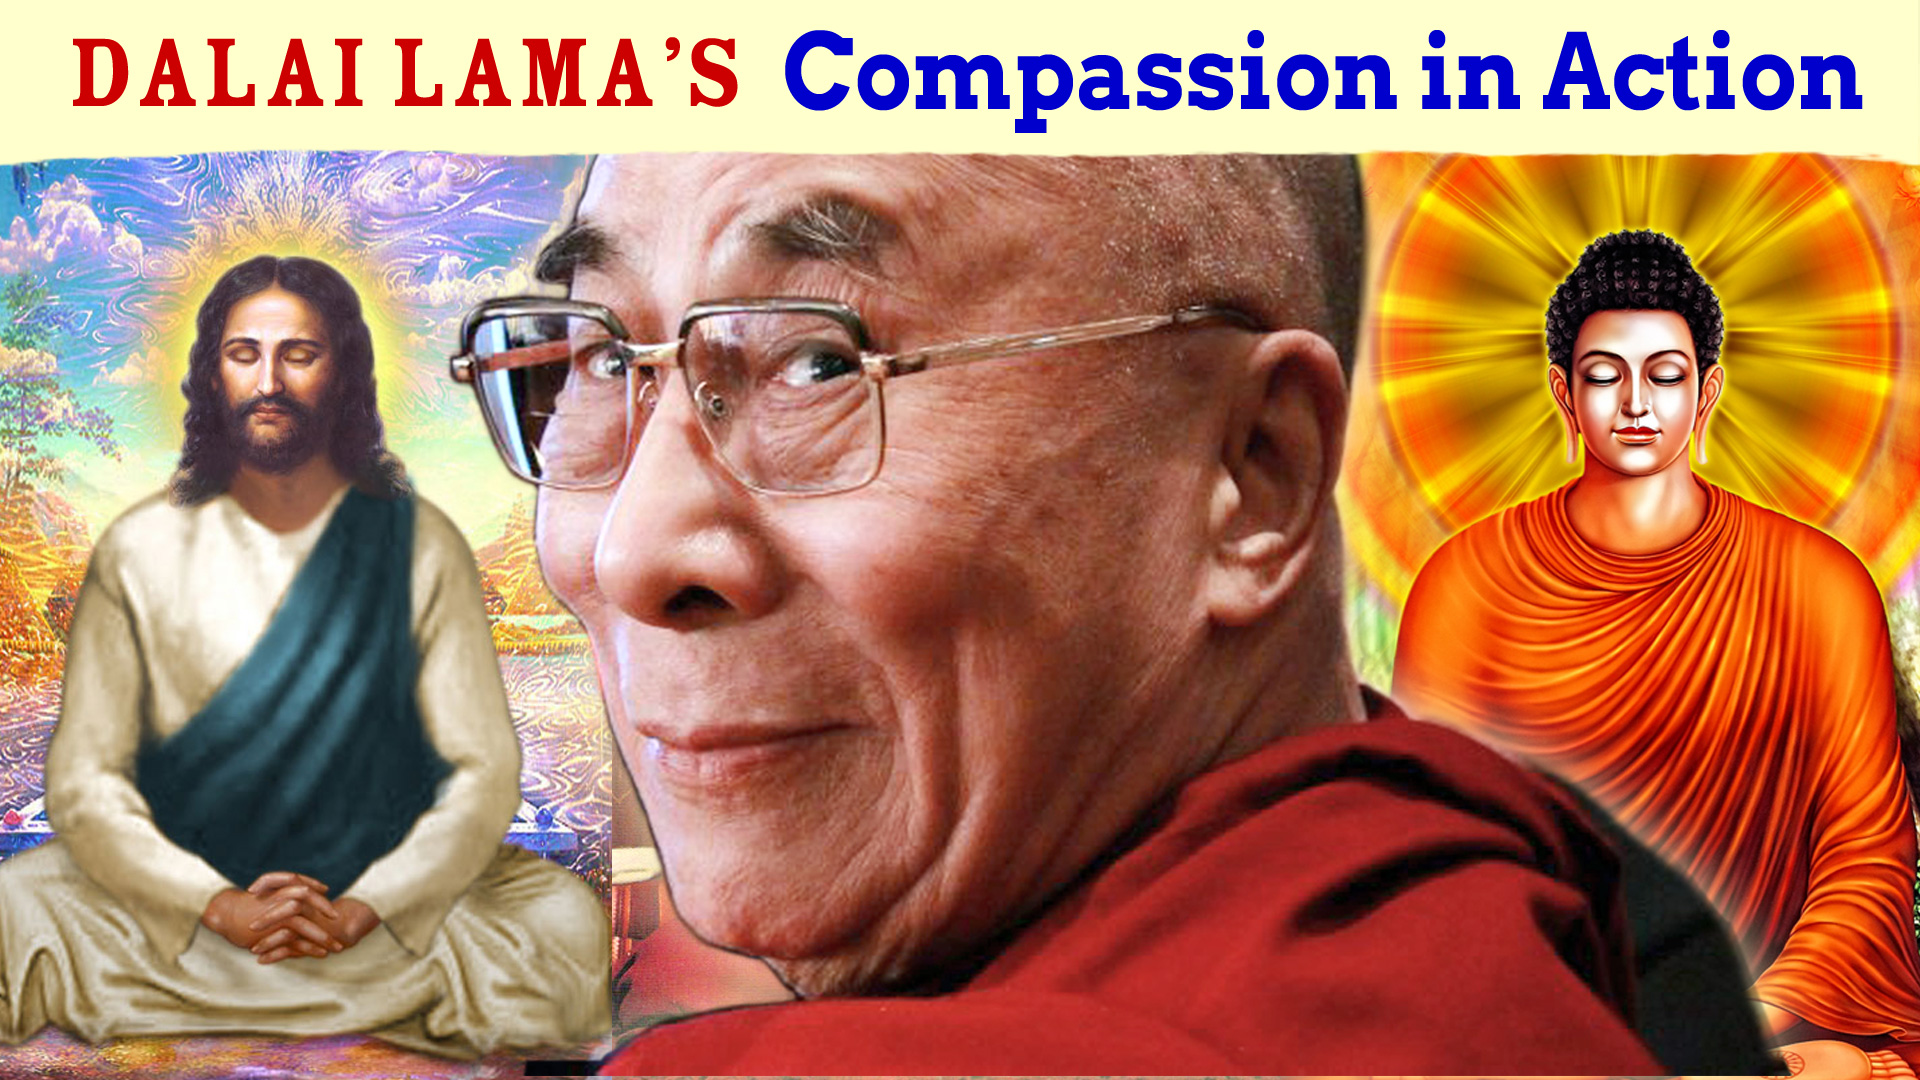 cia-trailer-image-v2-1-jesus-hhdl-buddha-top-text-only-1920x1080